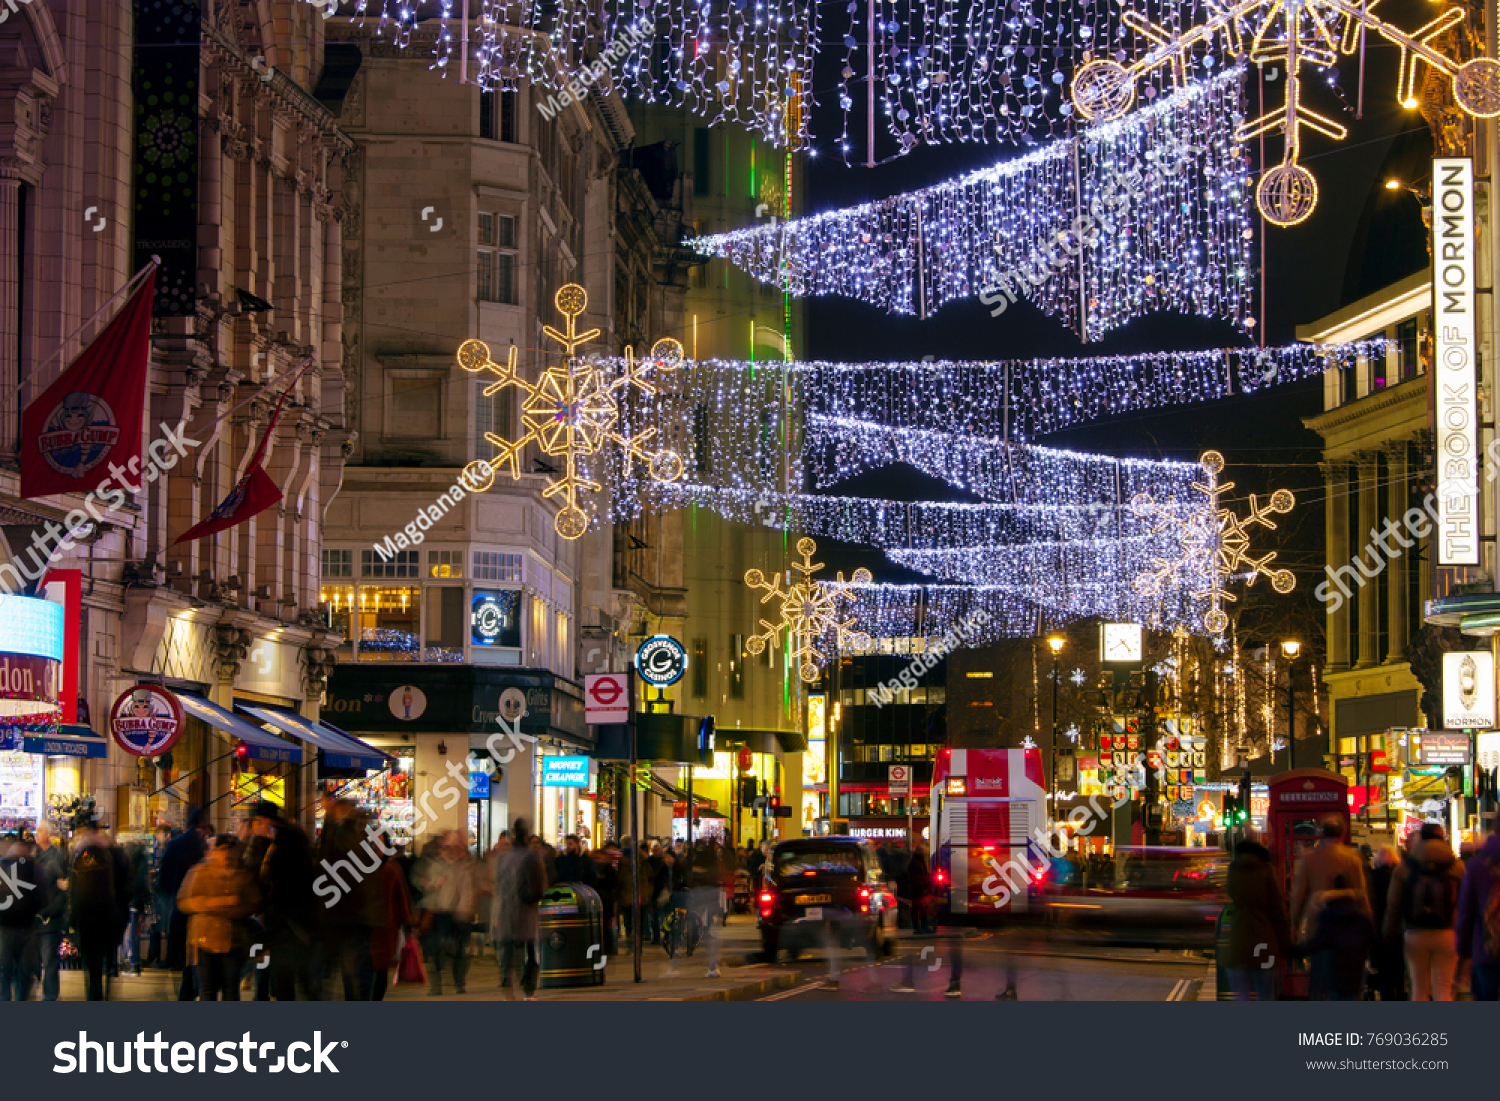 id 769036285 - London Christmas Decorations